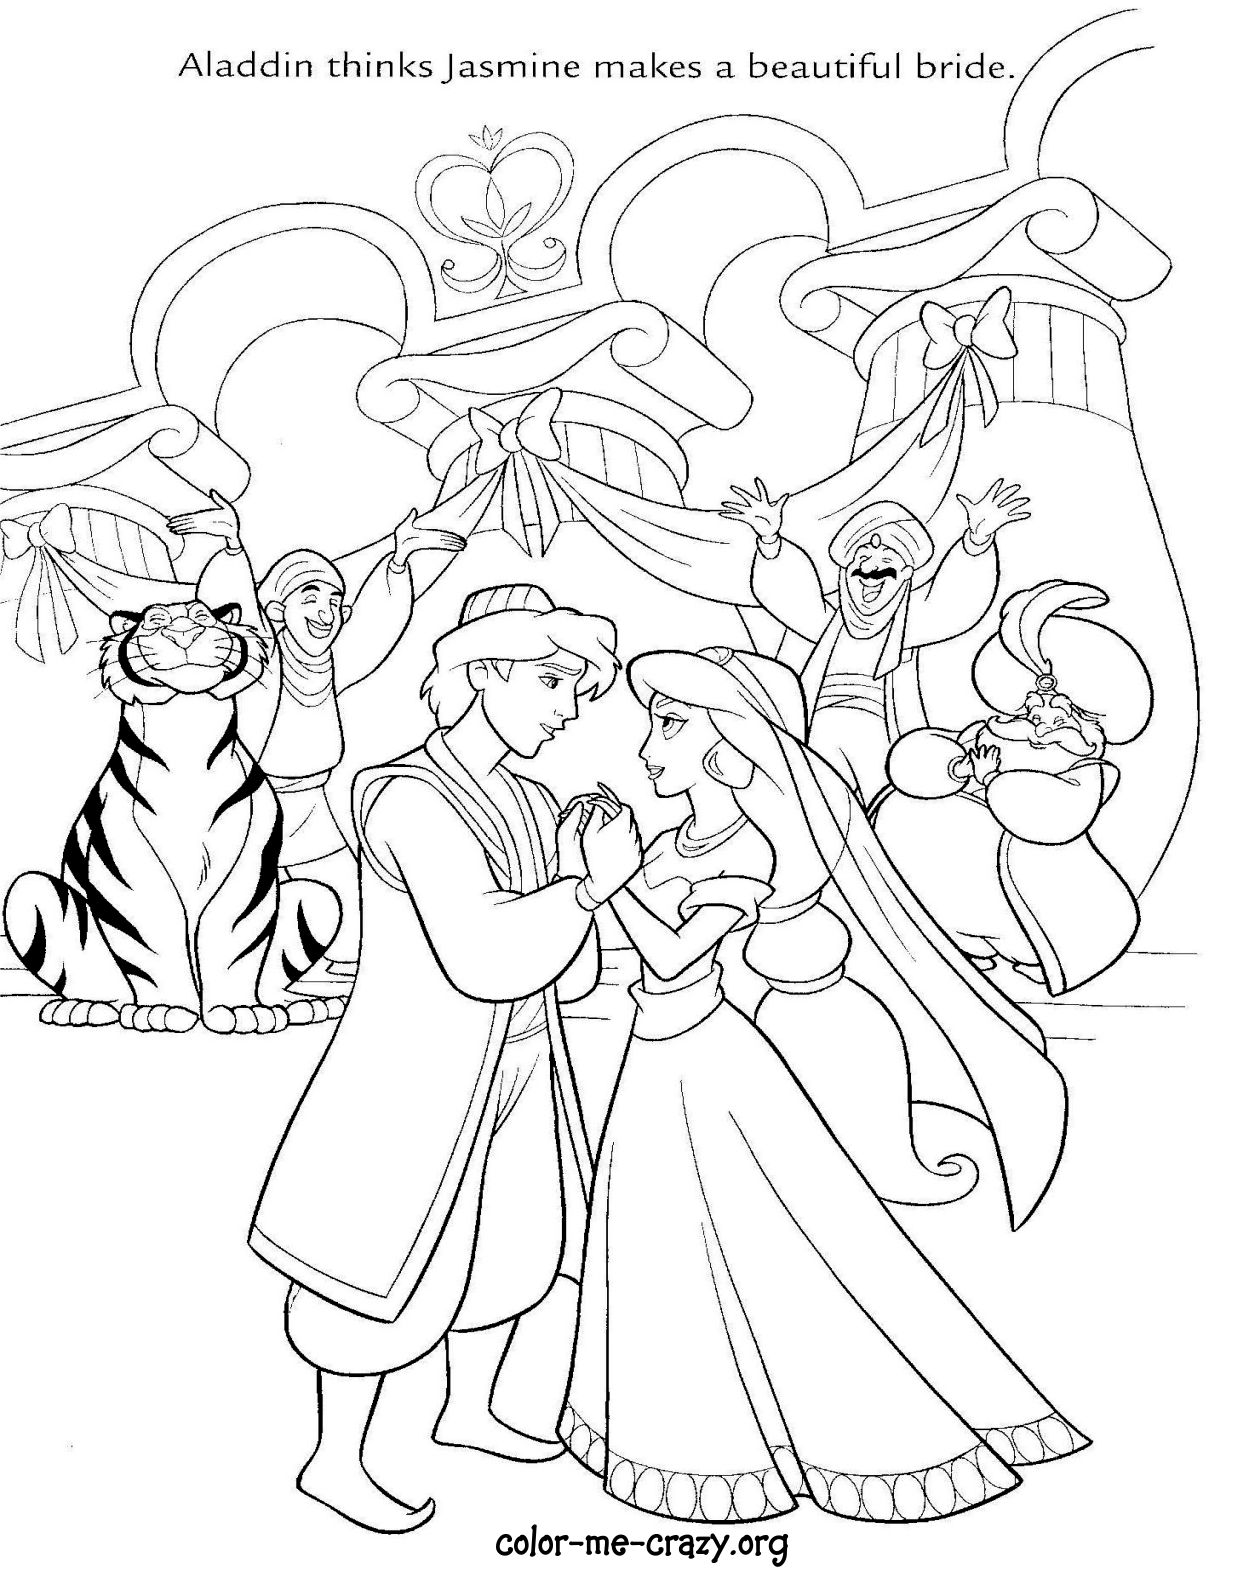 disney princess wedding dresses coloring pages wedding short dresses